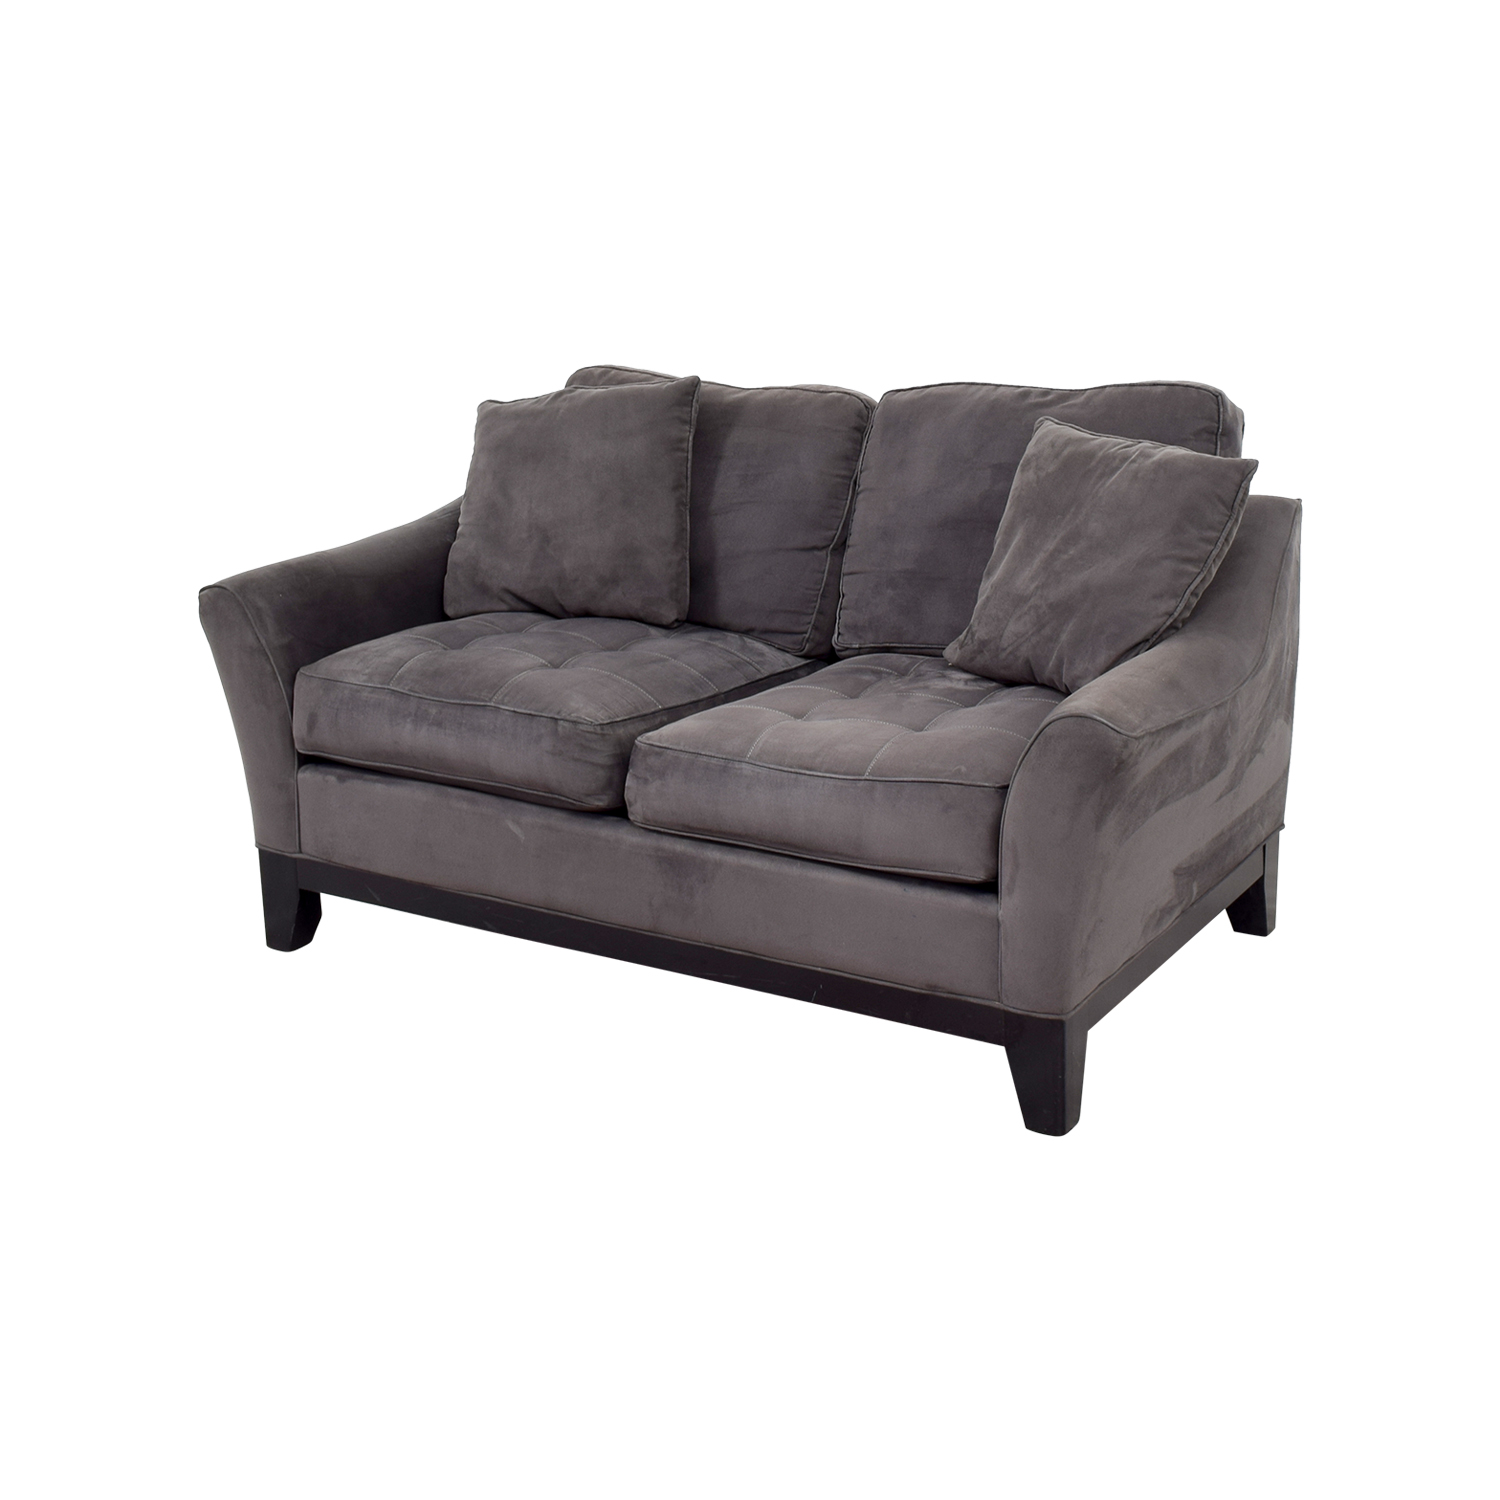 gray and cool sofa set couch sofas loveseat black recliner microfiber furniture